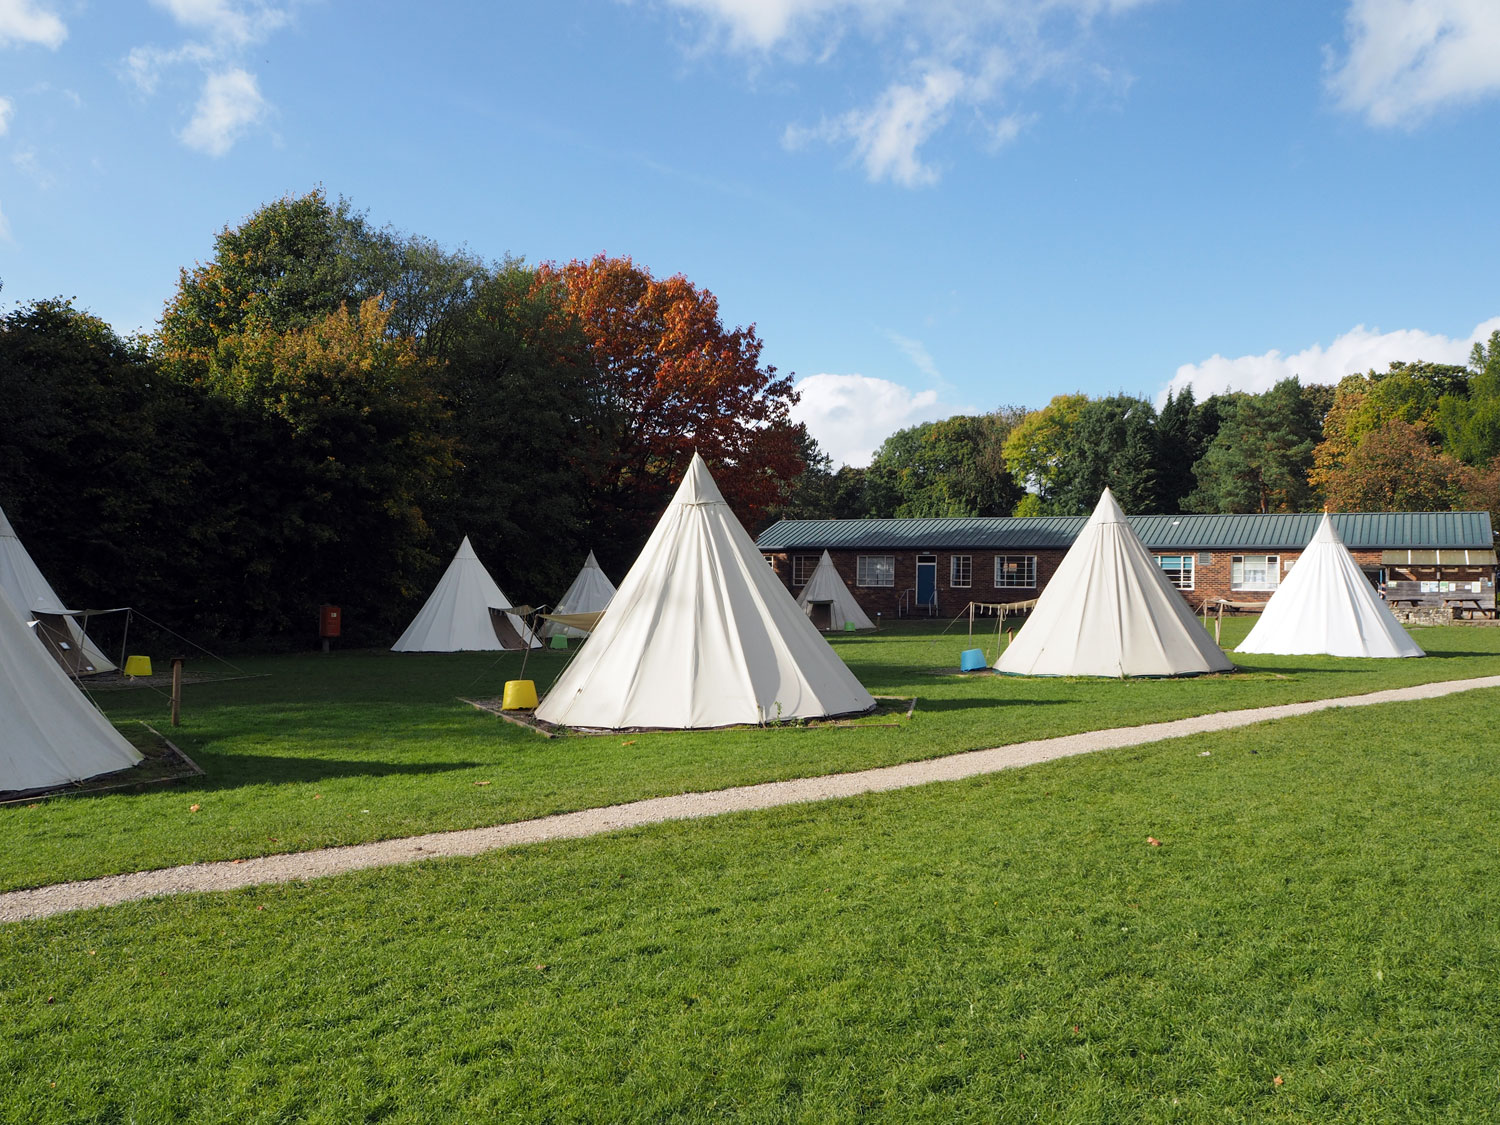 The teepee village